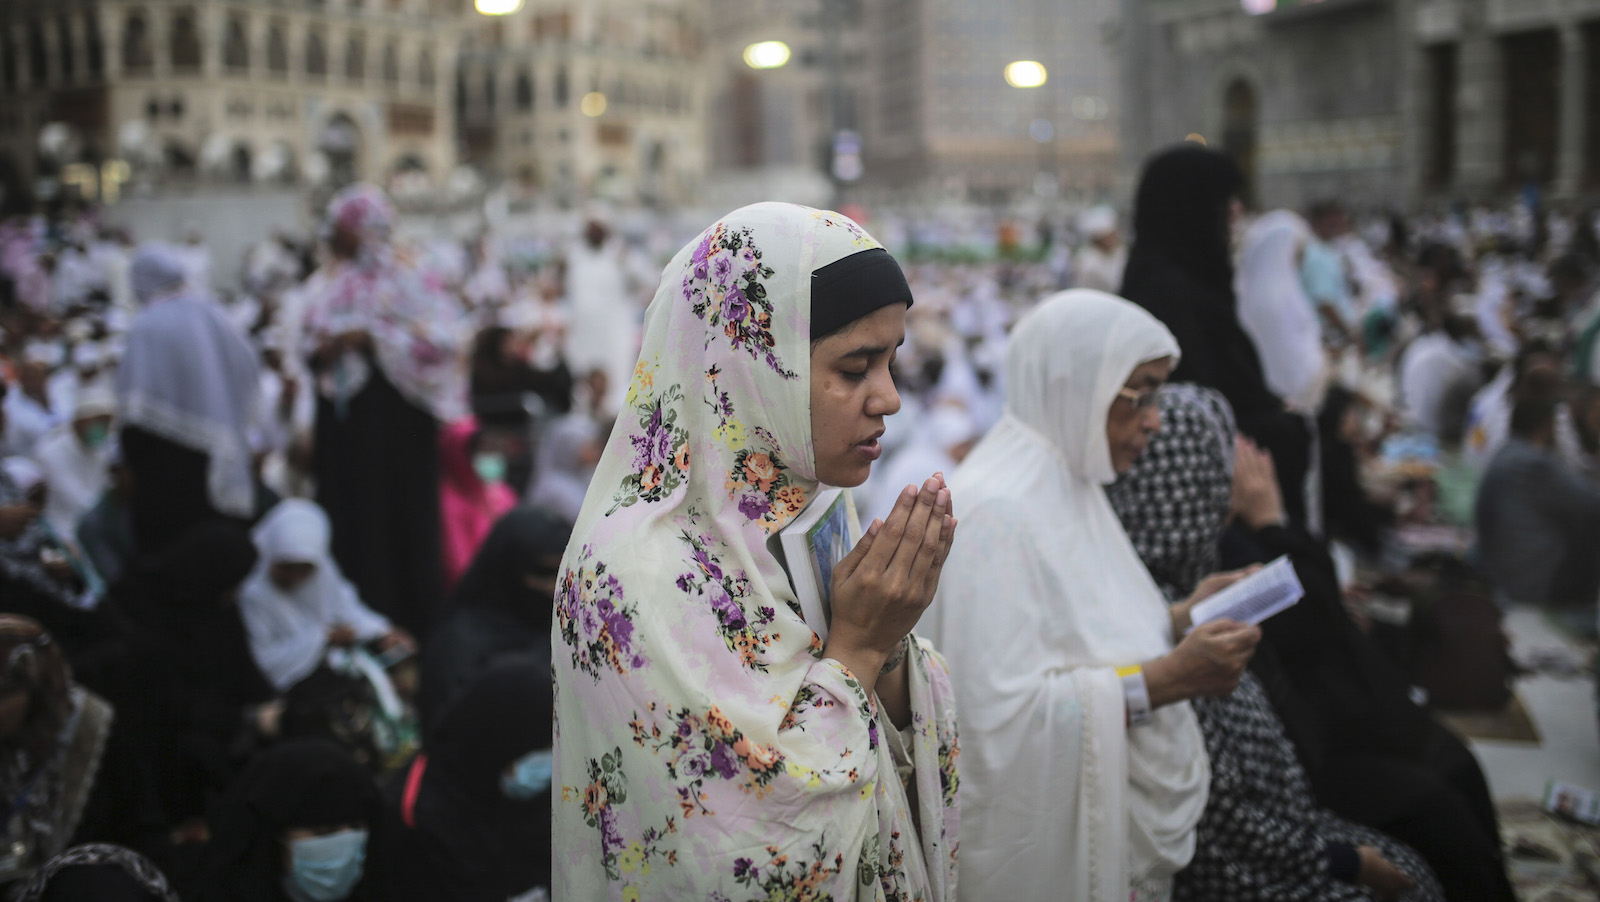 A Muslim Pilgrim prays outside the Grand Mosque in the holy city of Mecca, Saudi Arabia, Sunday, Sept. 20, 2015. Roughly 3 million people from around the world are expected to converge at the Kaaba, in Mina and other nearby areas for the hajj, which lasts about five days. All able-bodied Muslims are required to perform once in their lives.